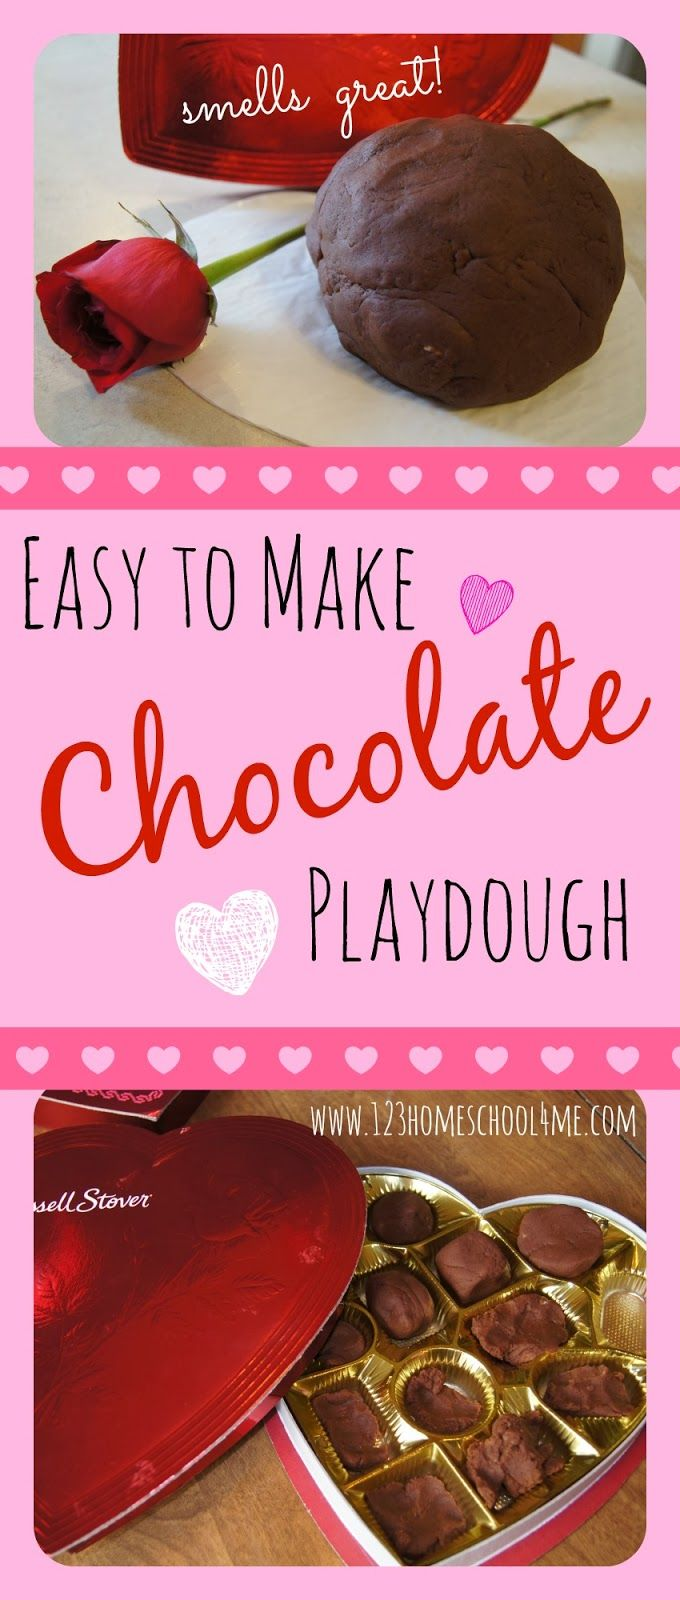 Chocolate Playdough Recipe - This is such a cool valentines day kids activity! What a fun way to play while enjoying the sweet smell of chocolate!